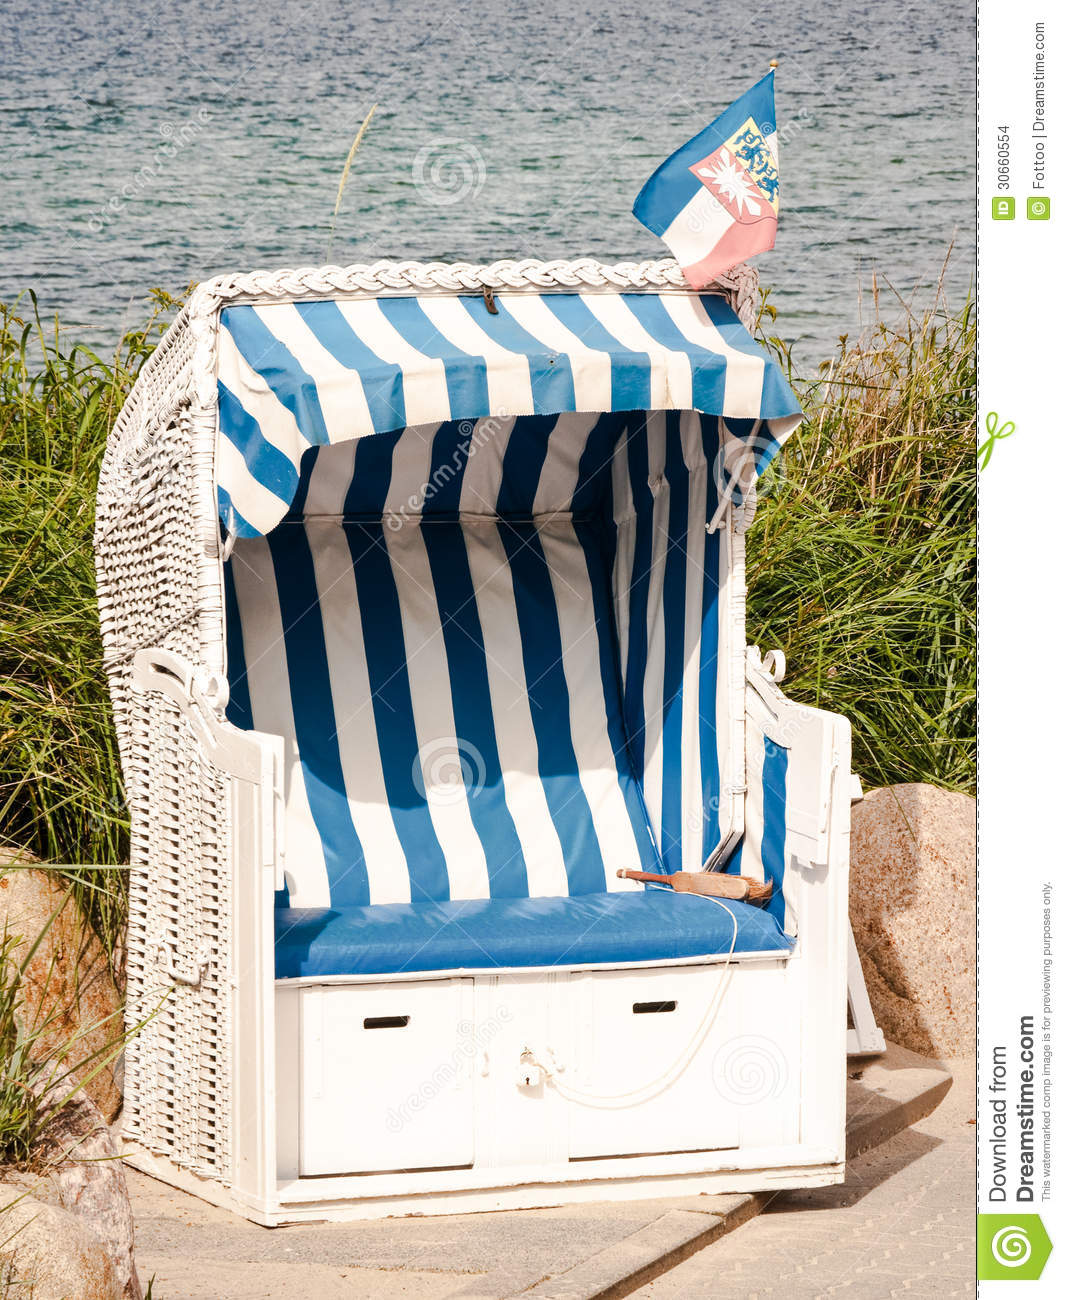 Hooded Chair Hooded Beach Chair Stock Images Image 30660554